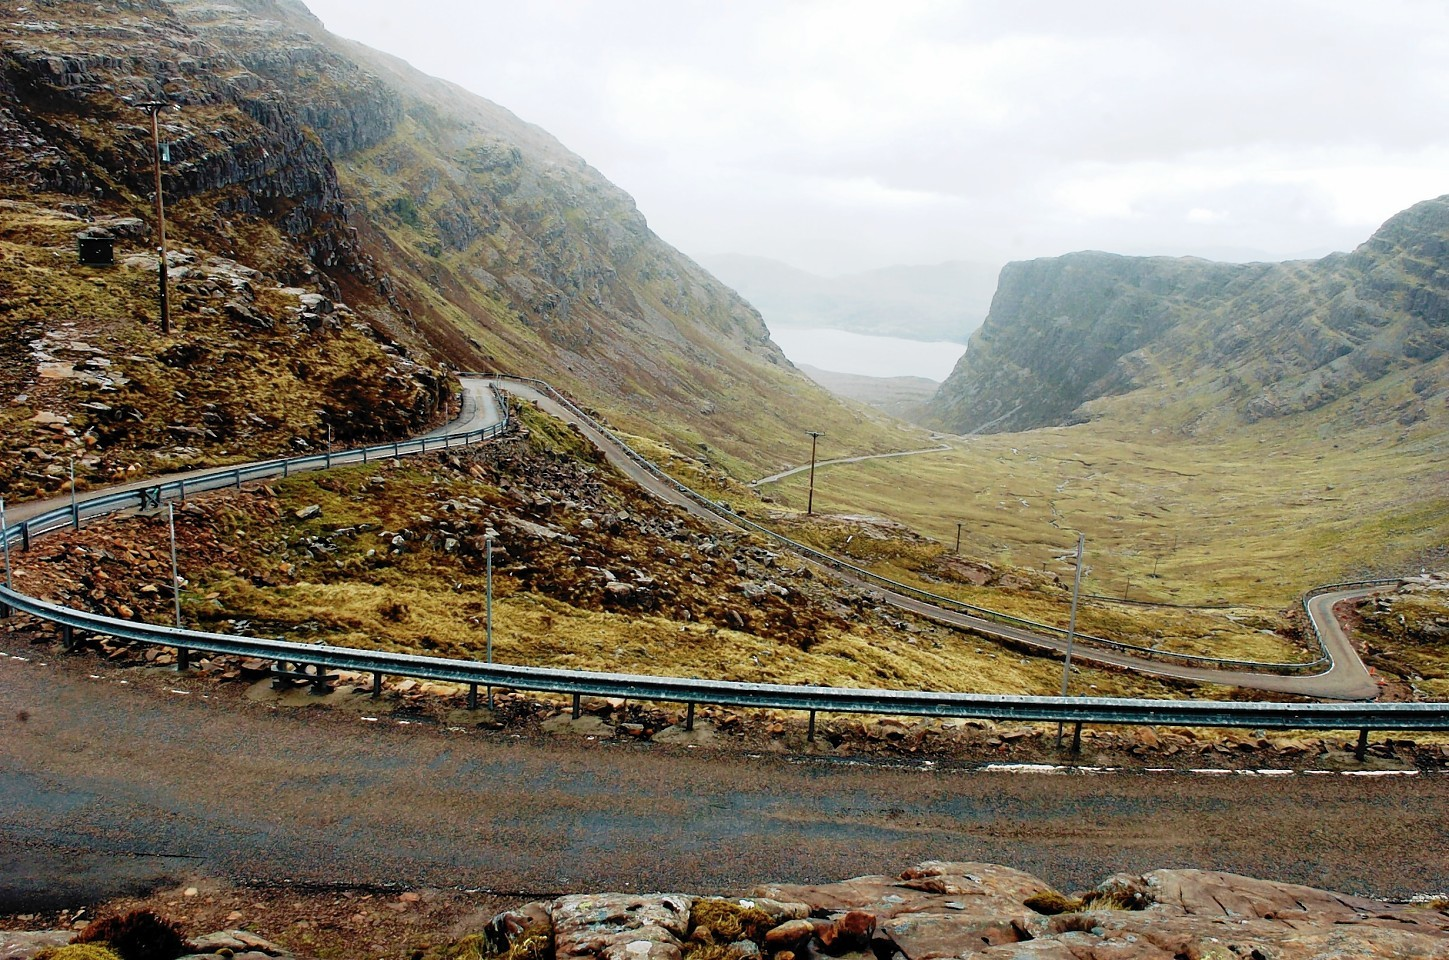 The NC500 follows the Bealach na Ba road to Applecross